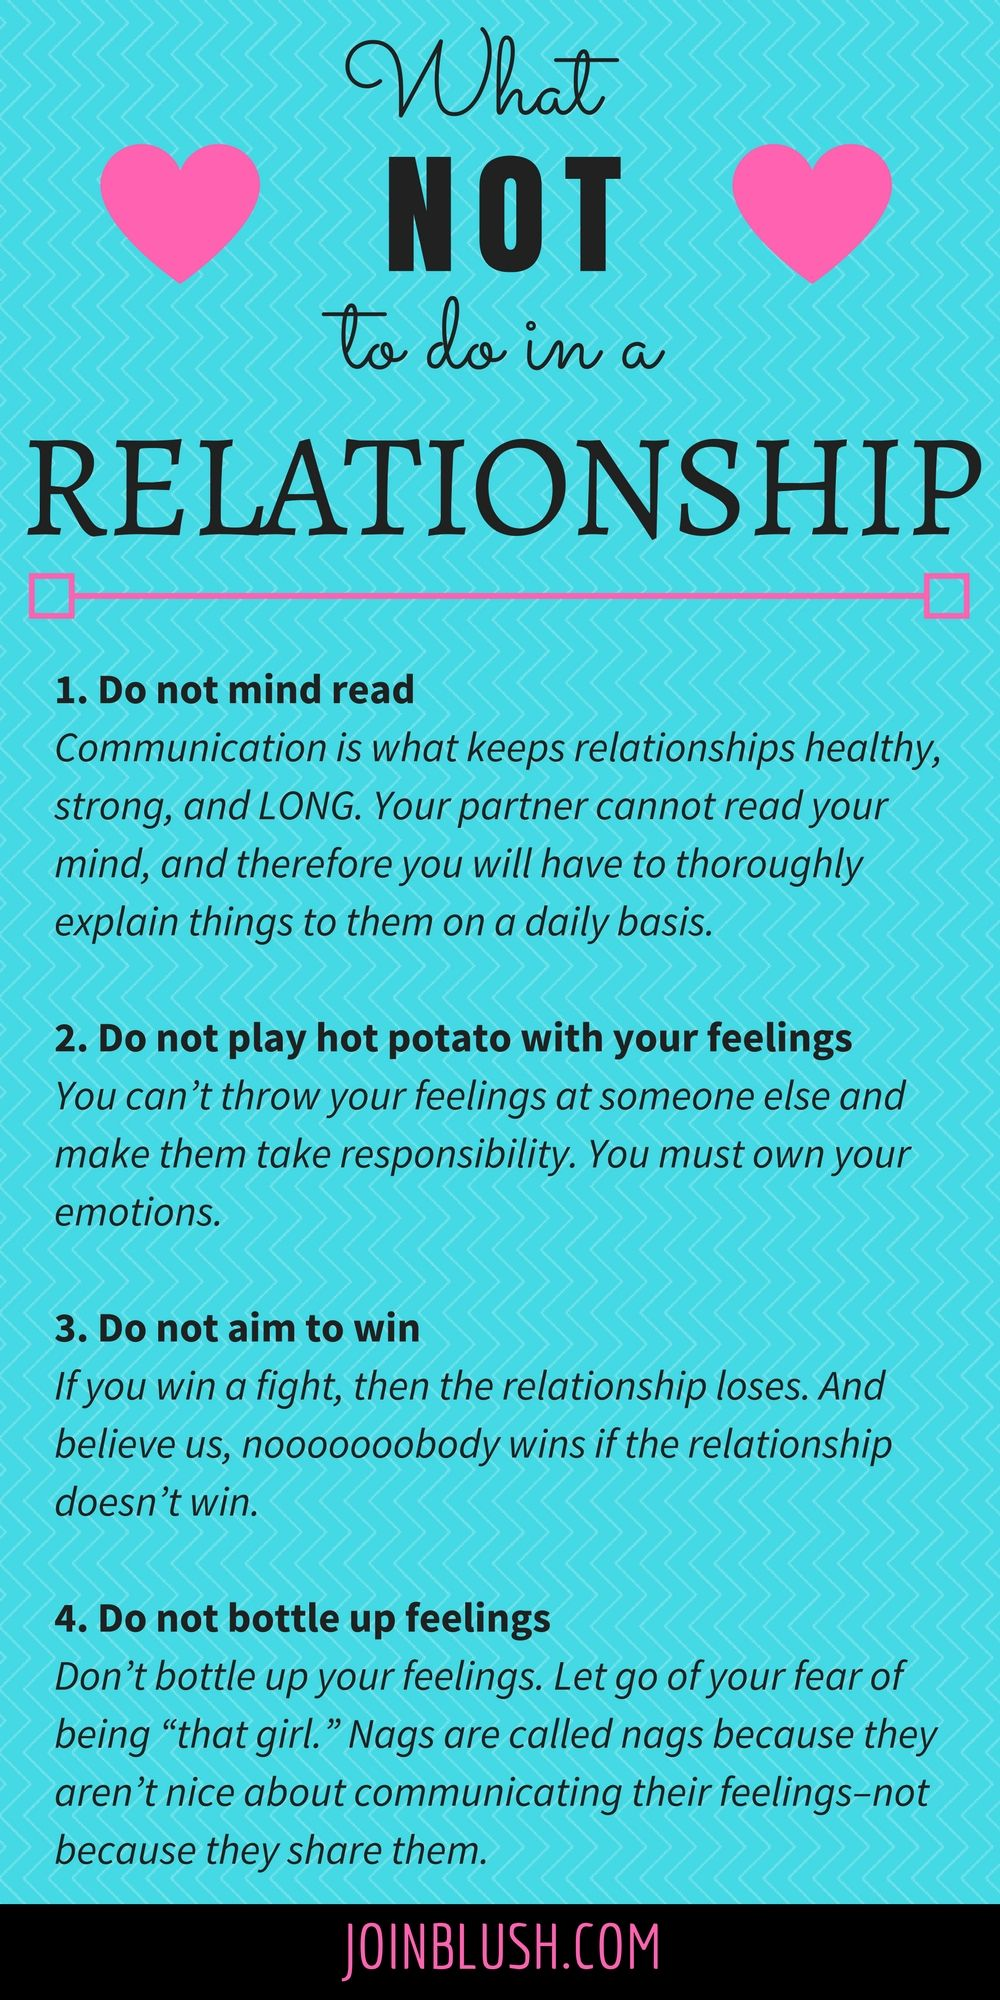 What to not do in a relationship